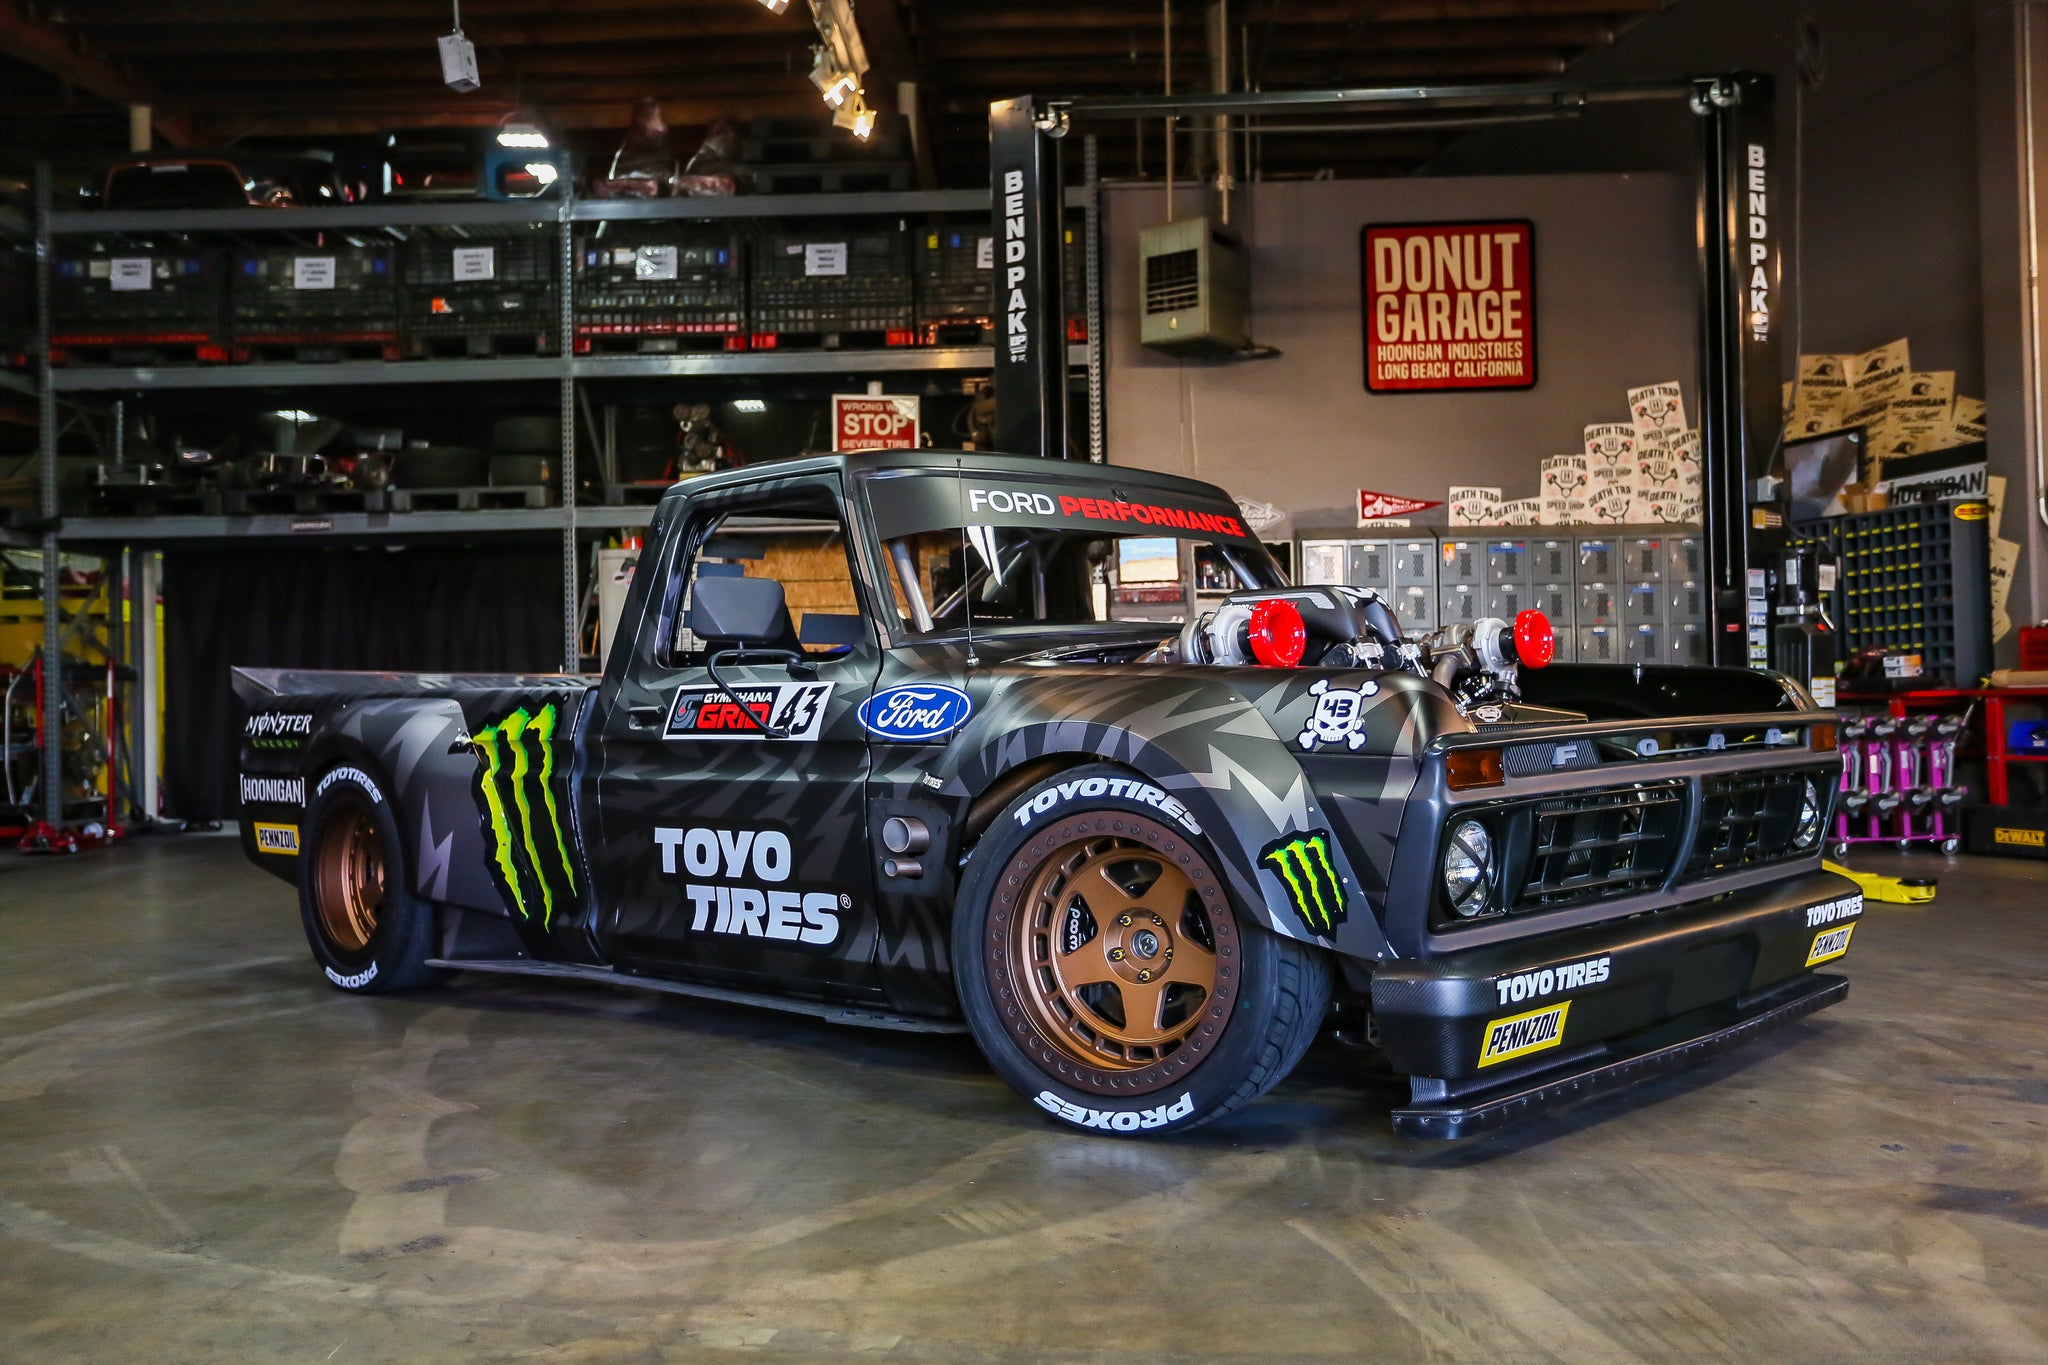 Ken Block's Hoonitruck: Twin Turbo, AWD, 914hp, and Ready ...